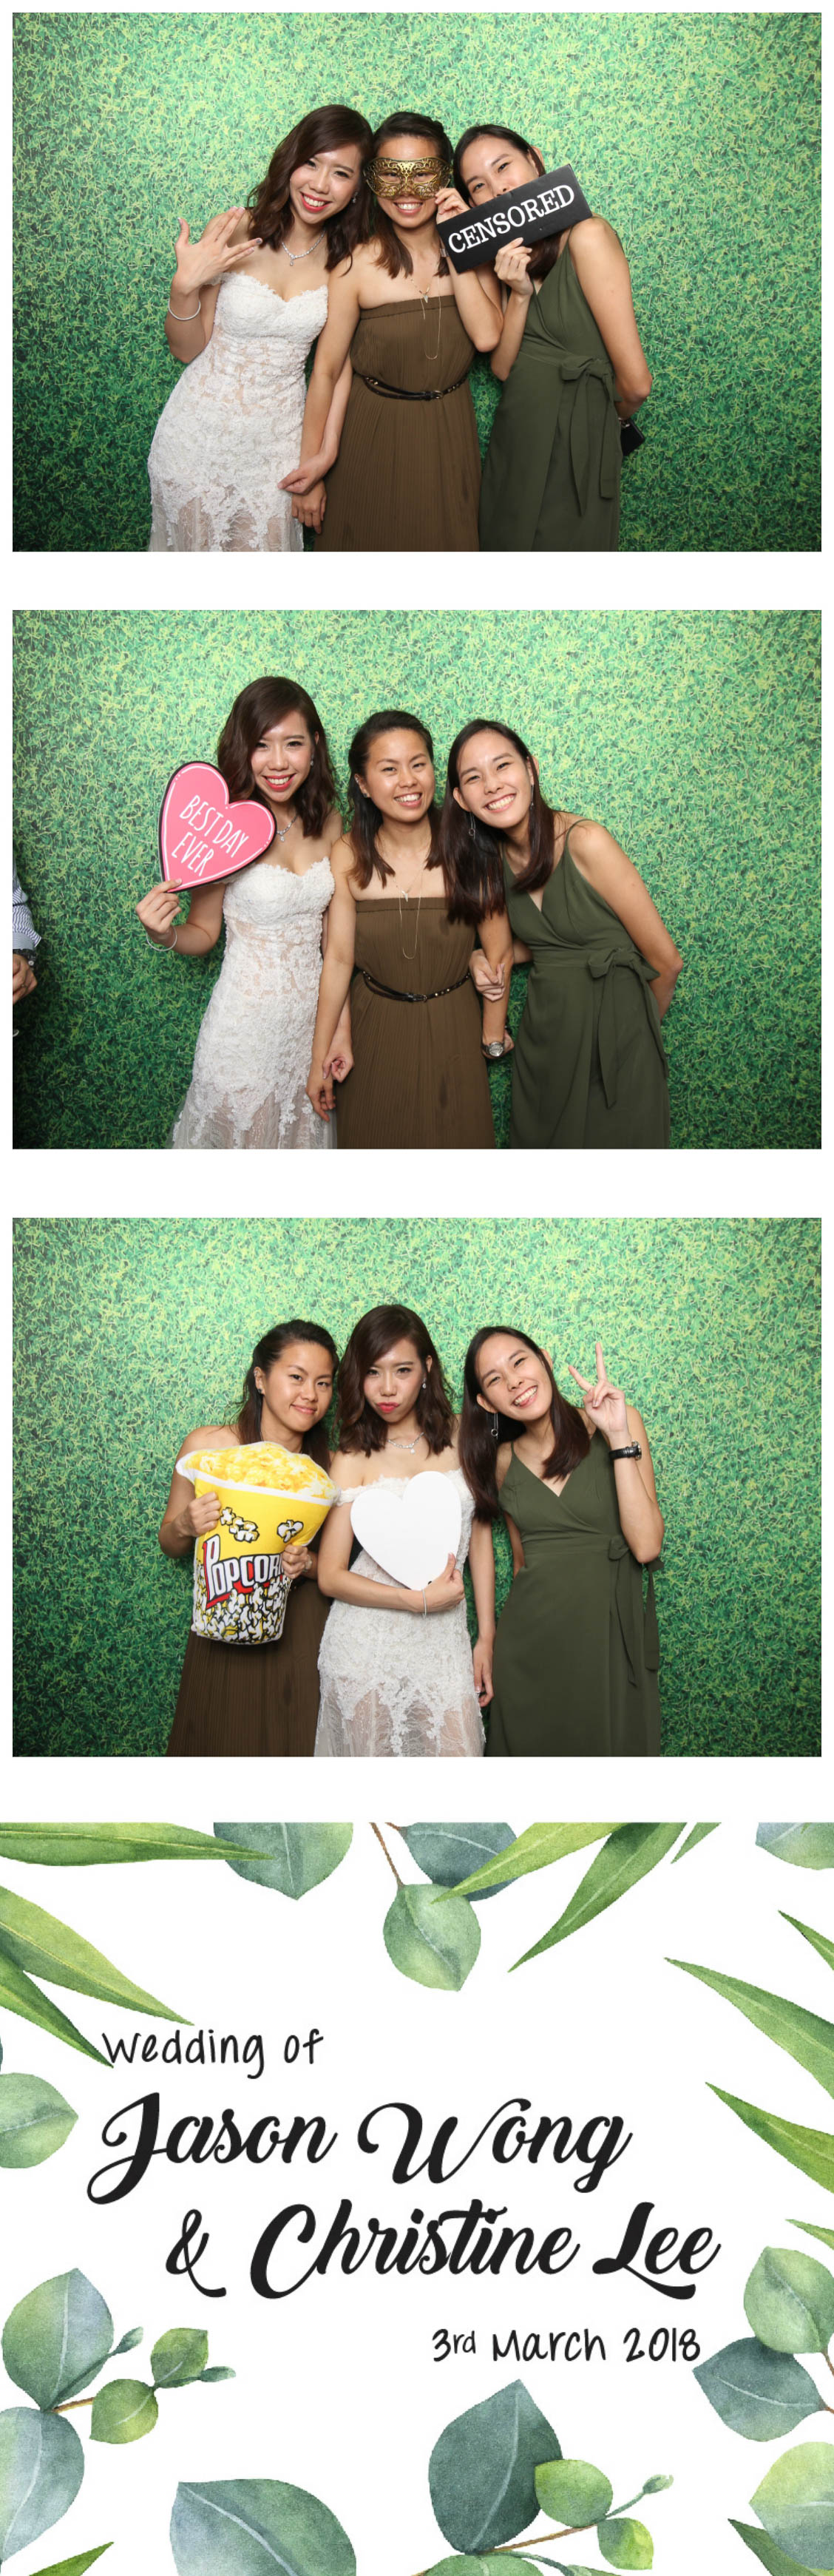 Photobooth 0302-37